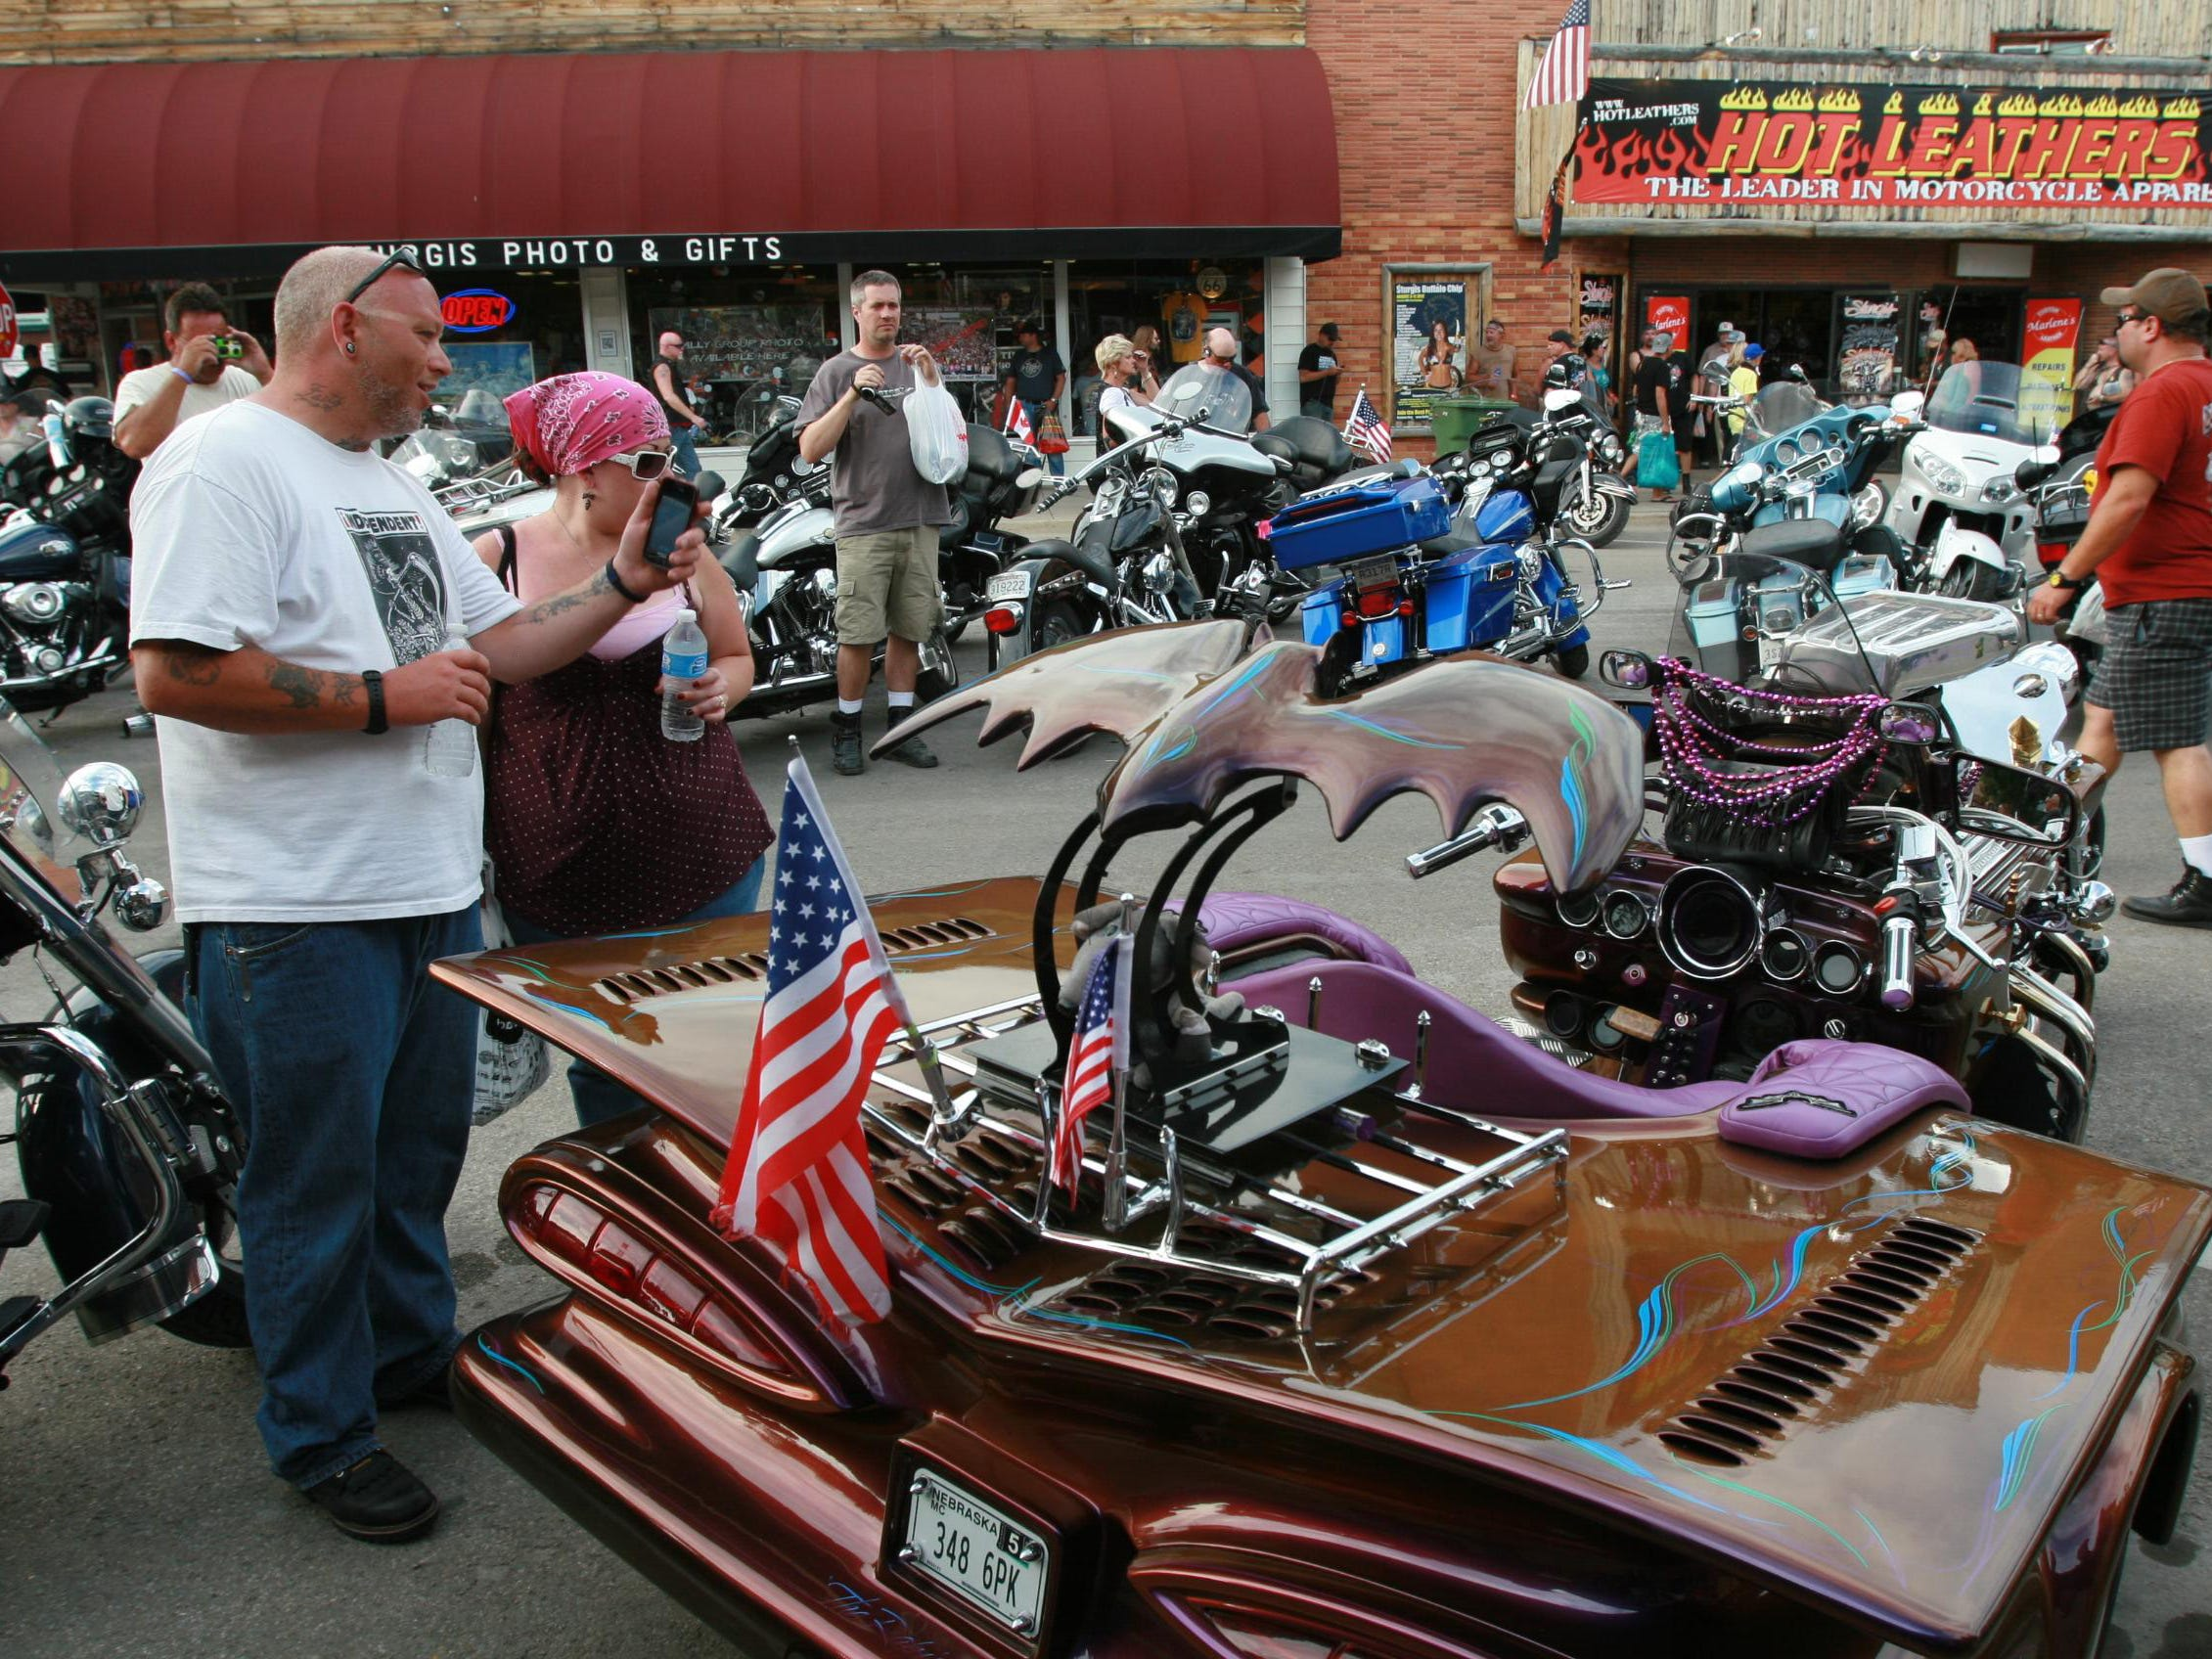 2012: The motorcycles themselves become a tourist attraction at the annual rally in Sturgis.